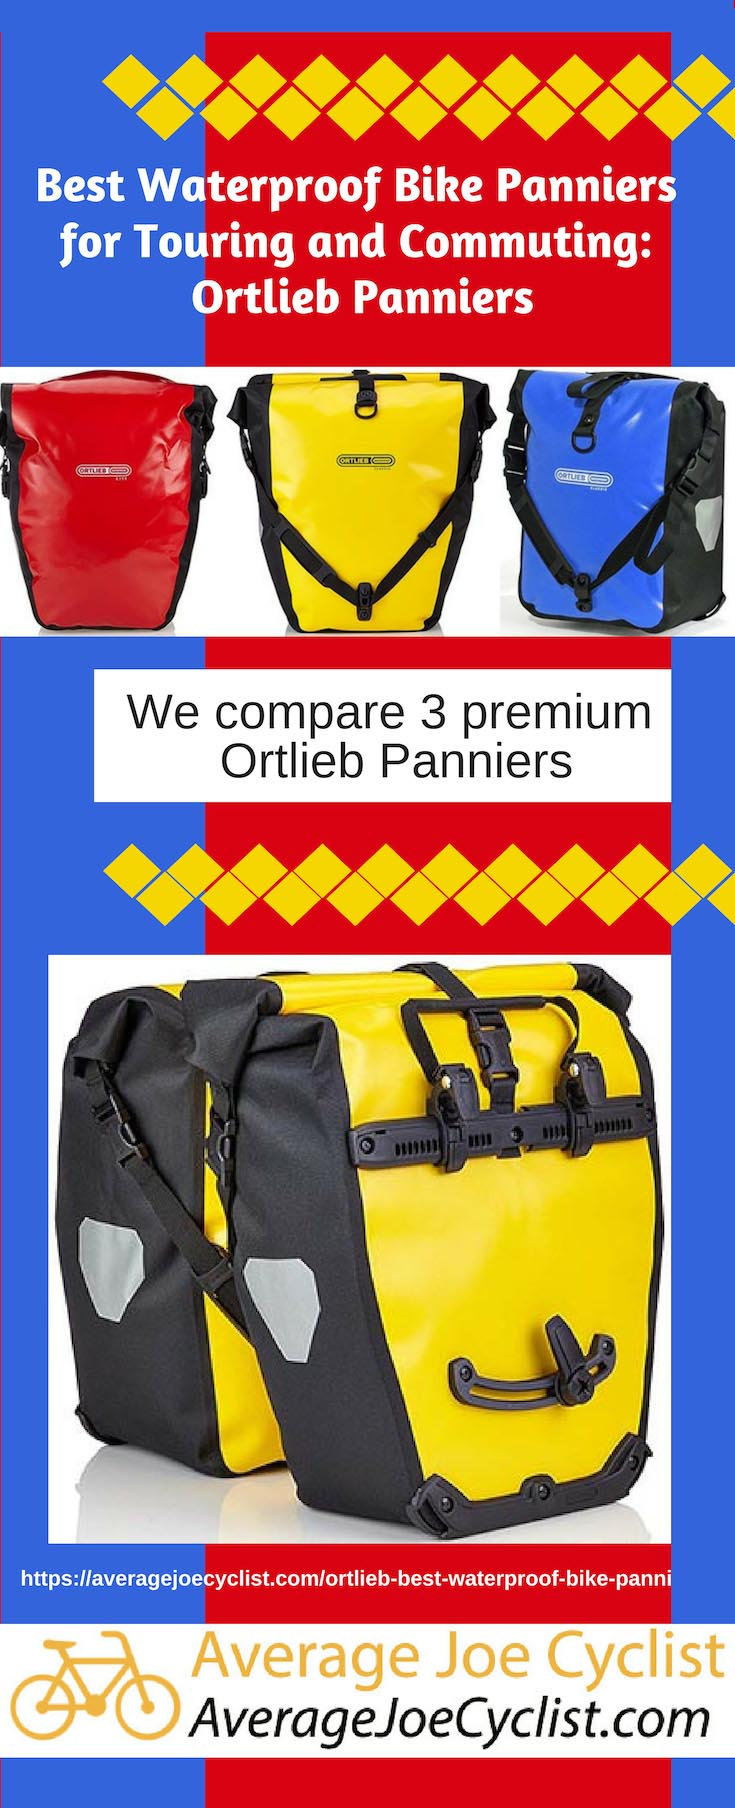 Best Waterproof Bike Panniers for Touring and Commuting: Ortlieb Bike Panniers